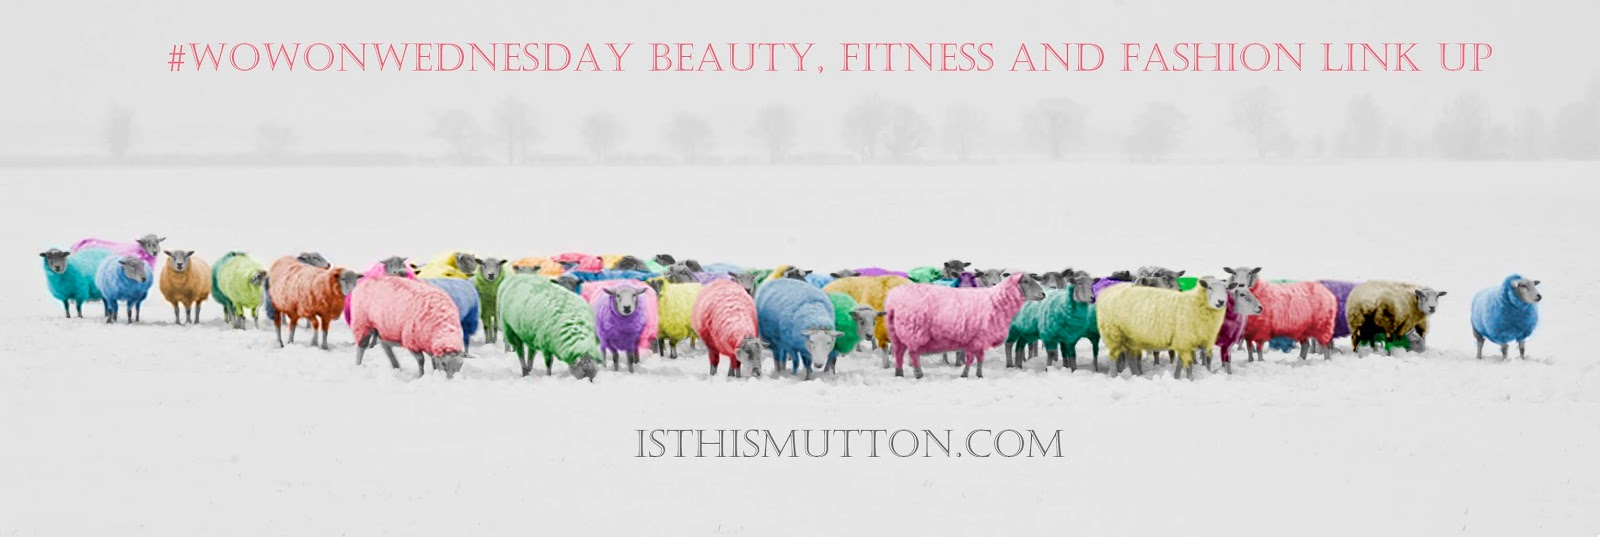 The colourful sheep logo of Is This Mutton, the style blog, and its weekly fashion and beauty link-up for bloggers #WowOnWednesday.